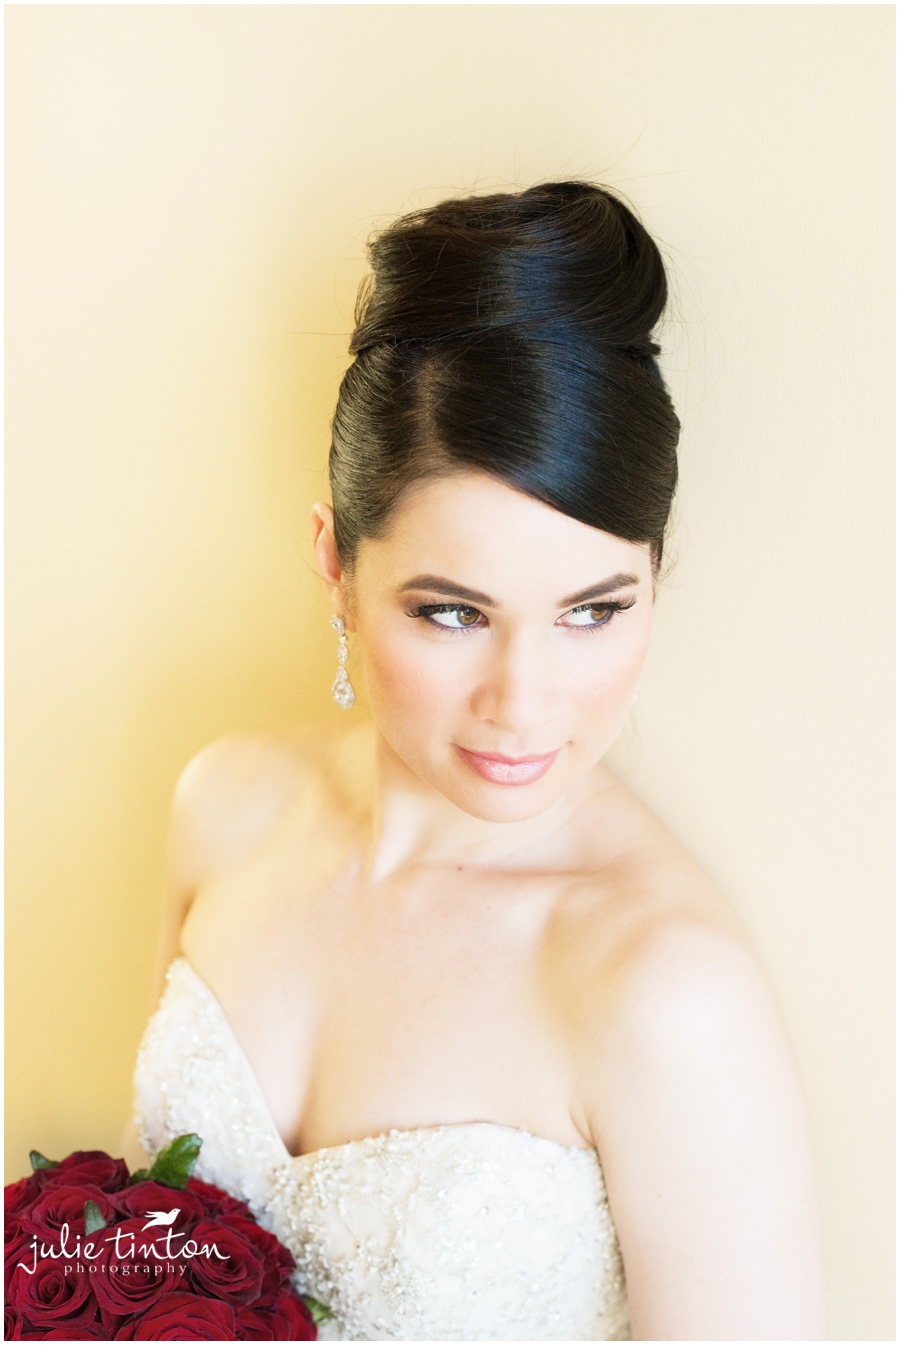 stylish_updo_bride_dalhousie_castle_wedding_0113.jpg